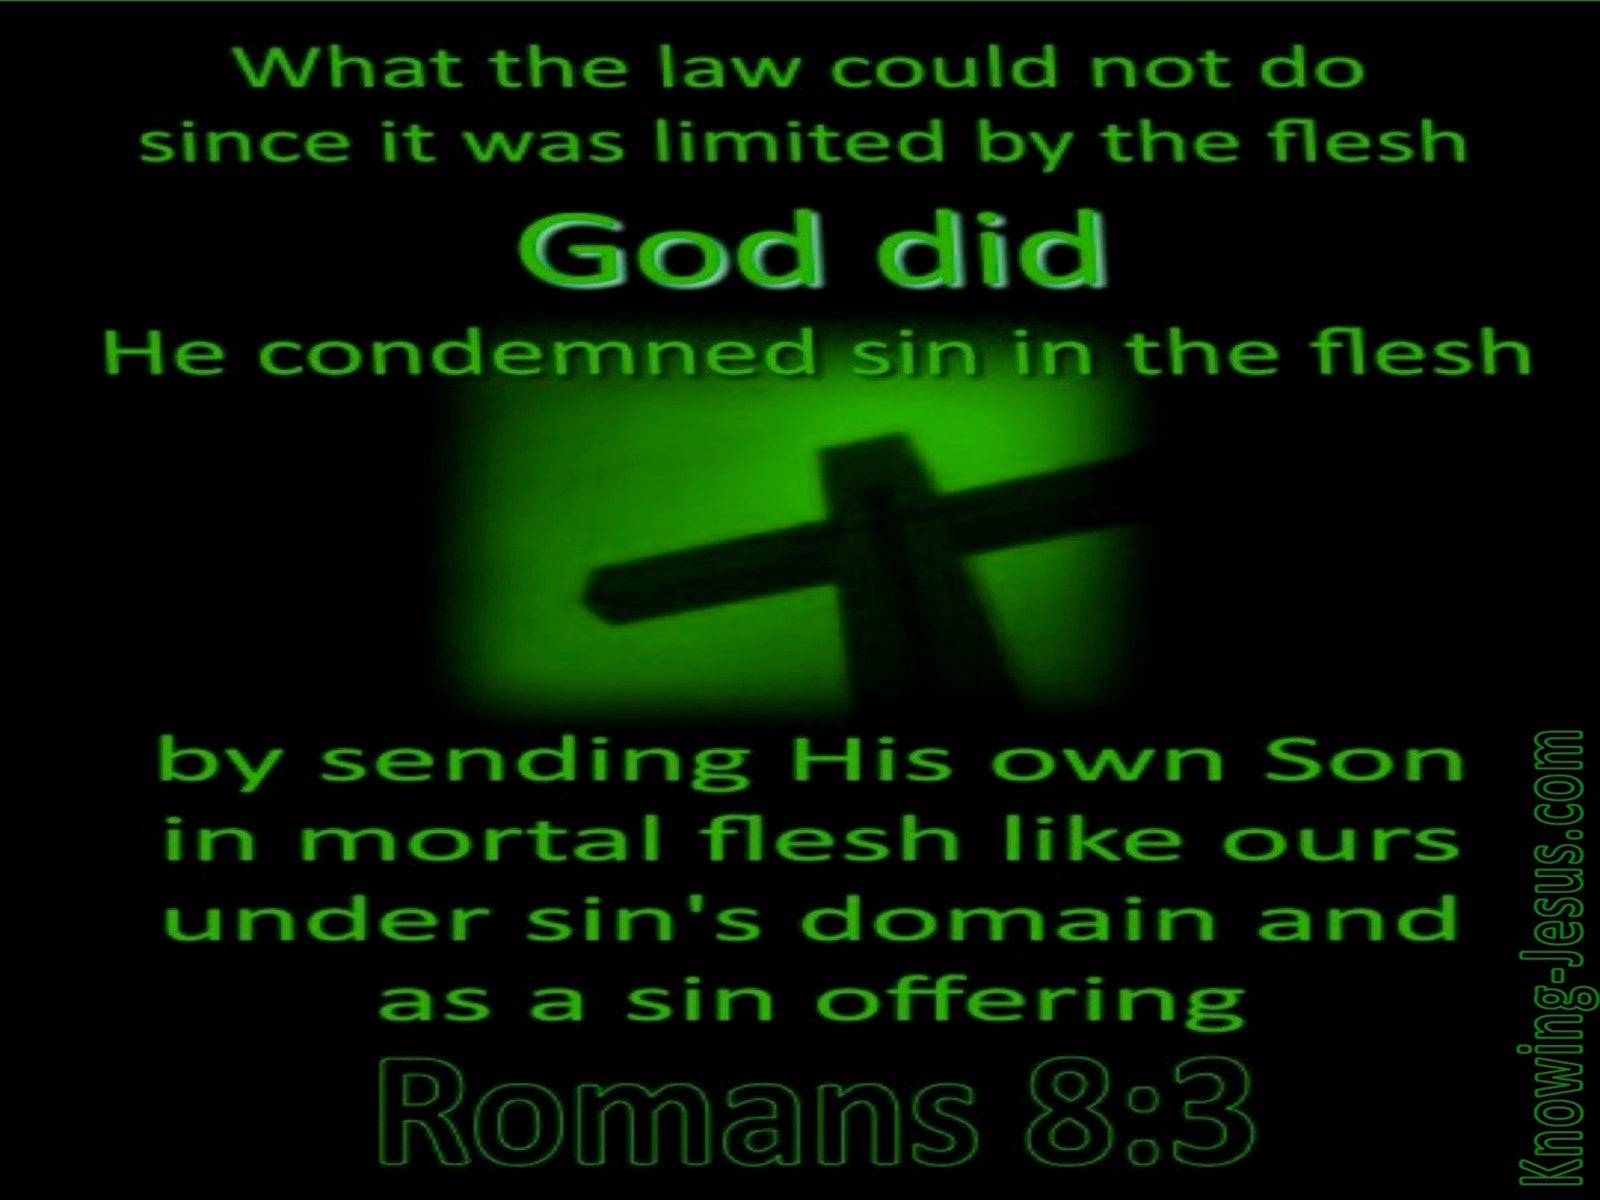 Romans 8:3 He Comdemned Sin In The Flesh (green)